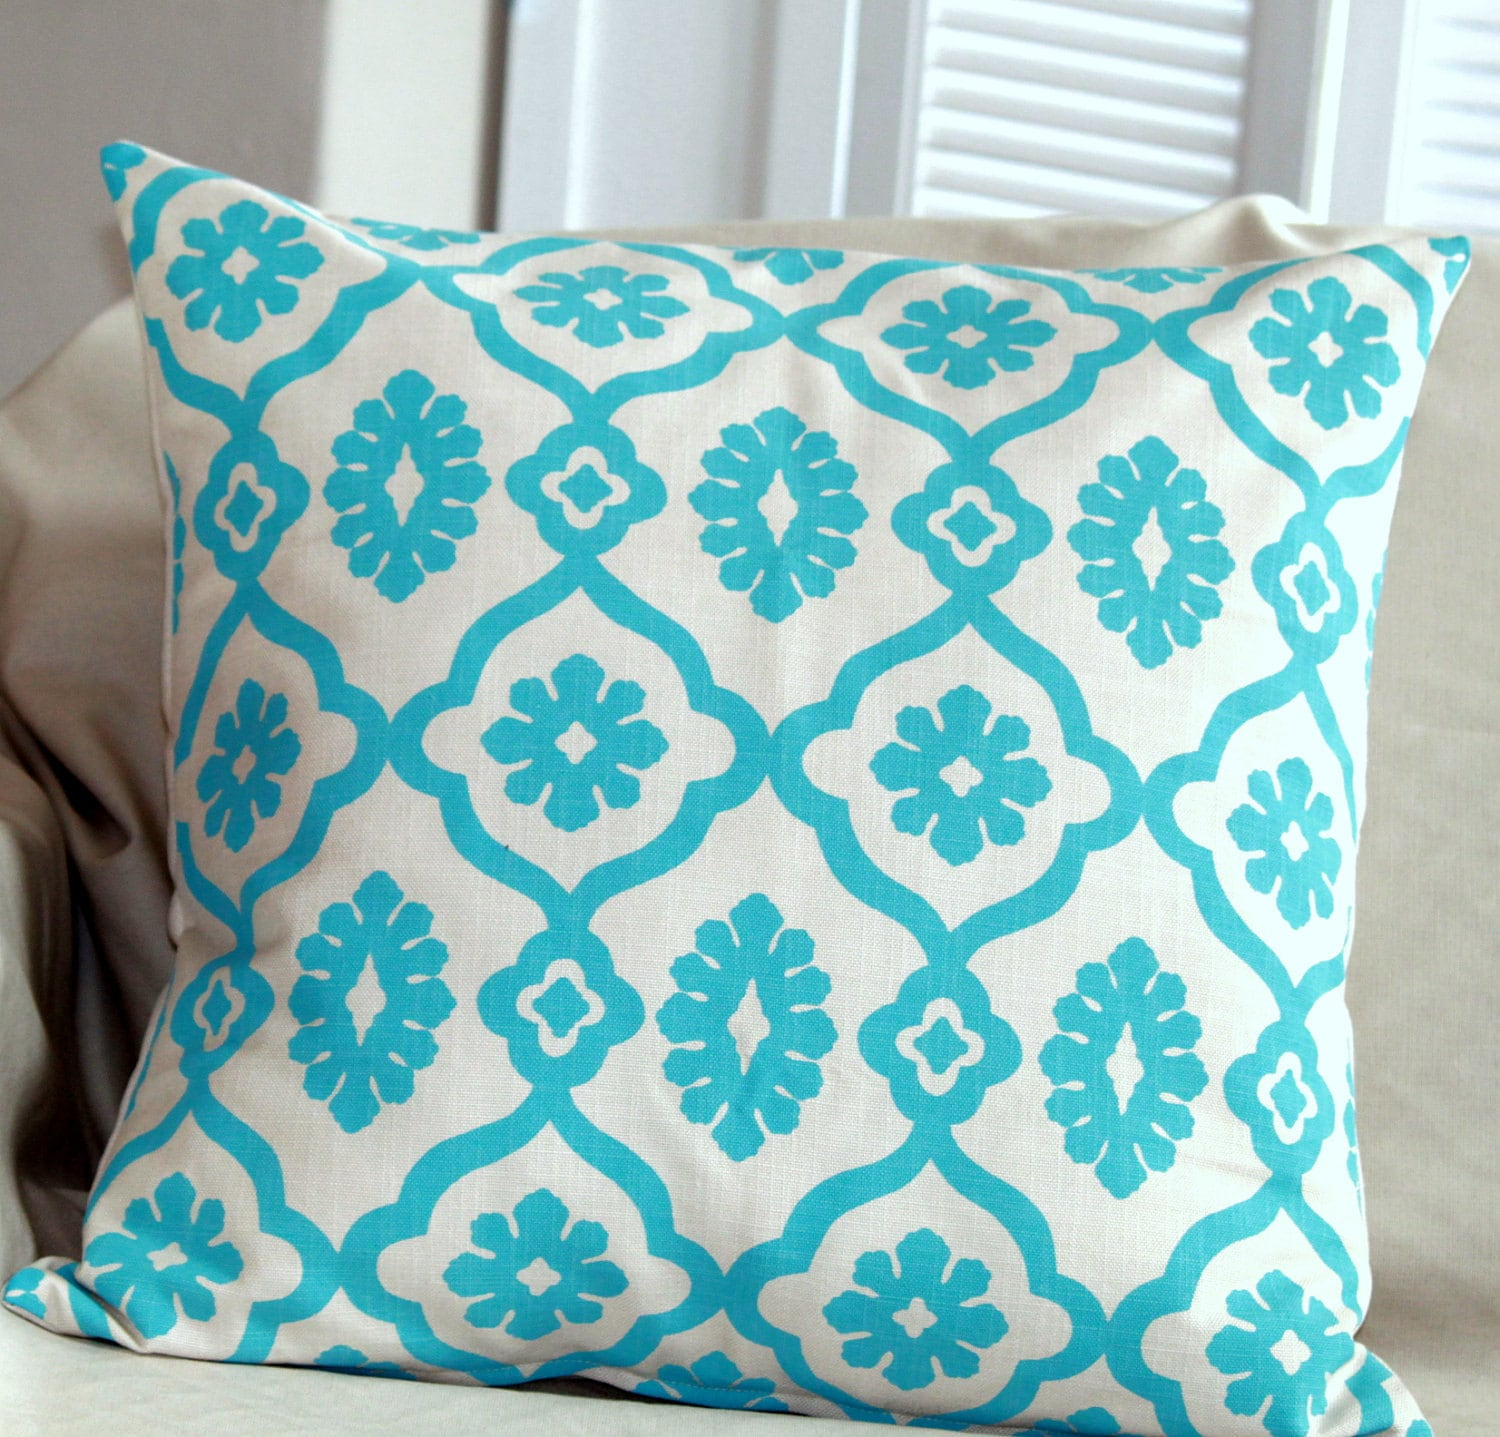 Lattice - Teal on Stone - Scatter Cushion 60x60cm